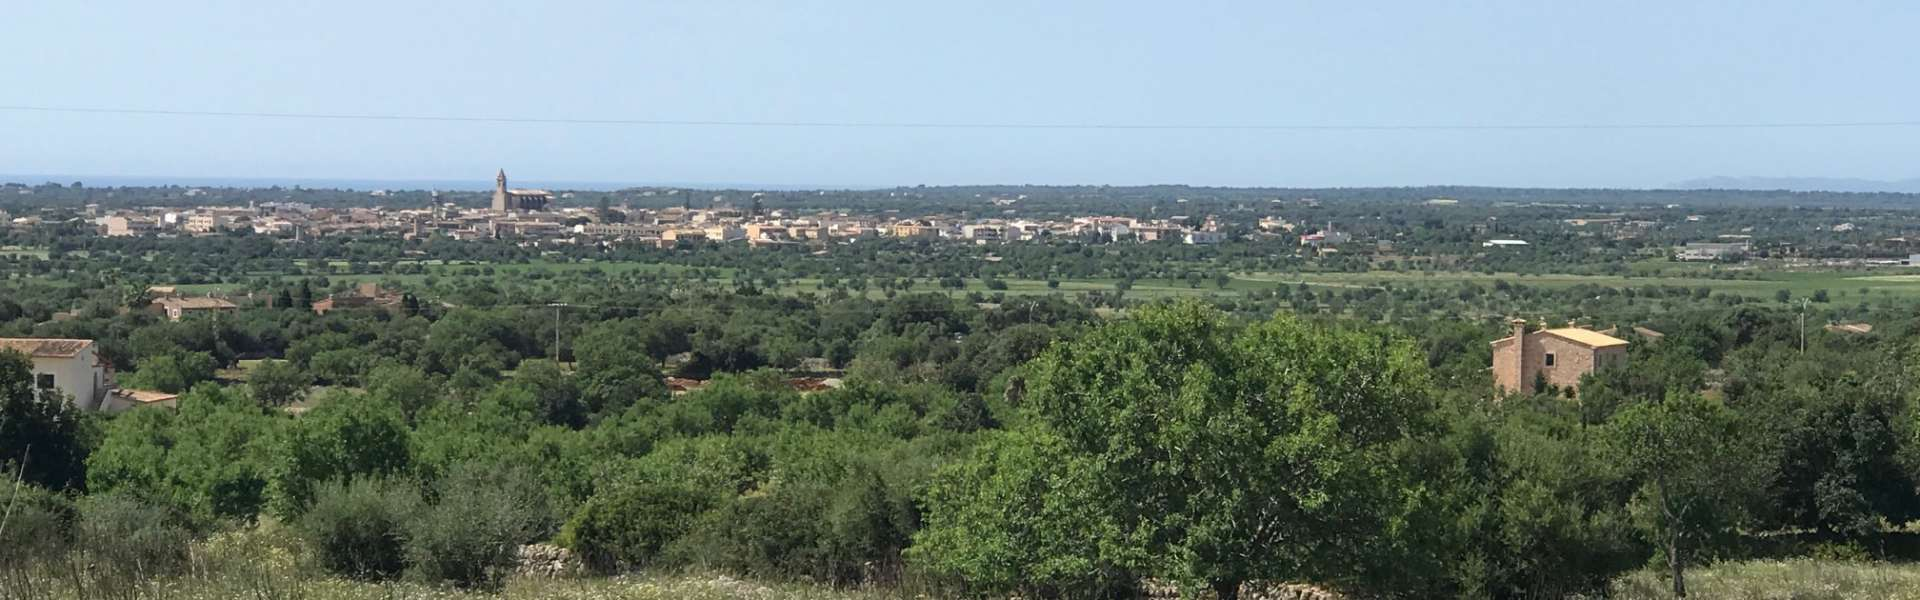 Santanyi - Building plot with views to Cabrera and Santanyi